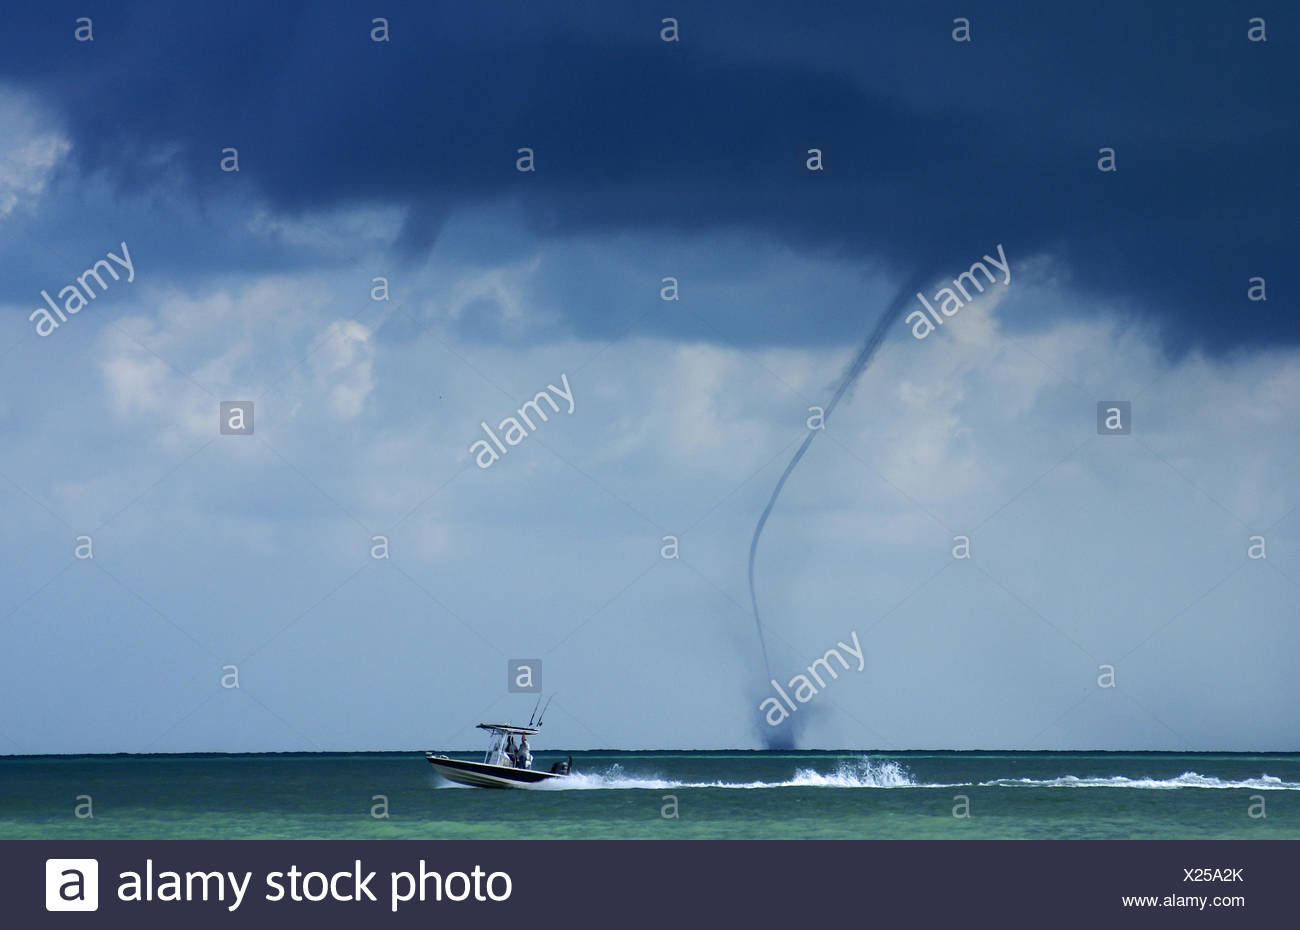 Water spout and motor boat on sea - Stock Image